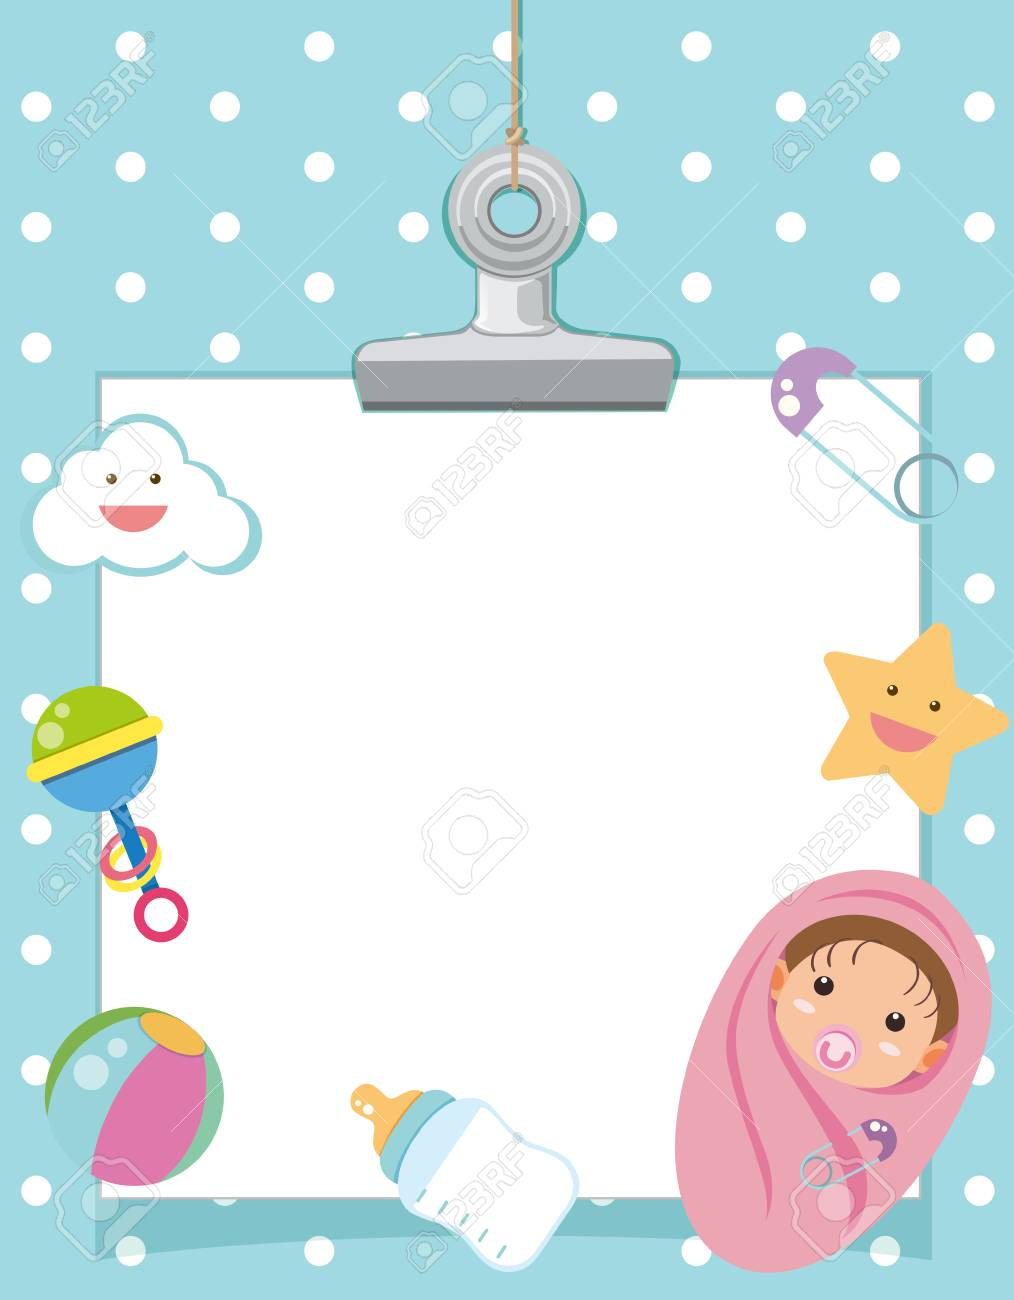 Border Template With Infant And Toys Illustration Royalty Free